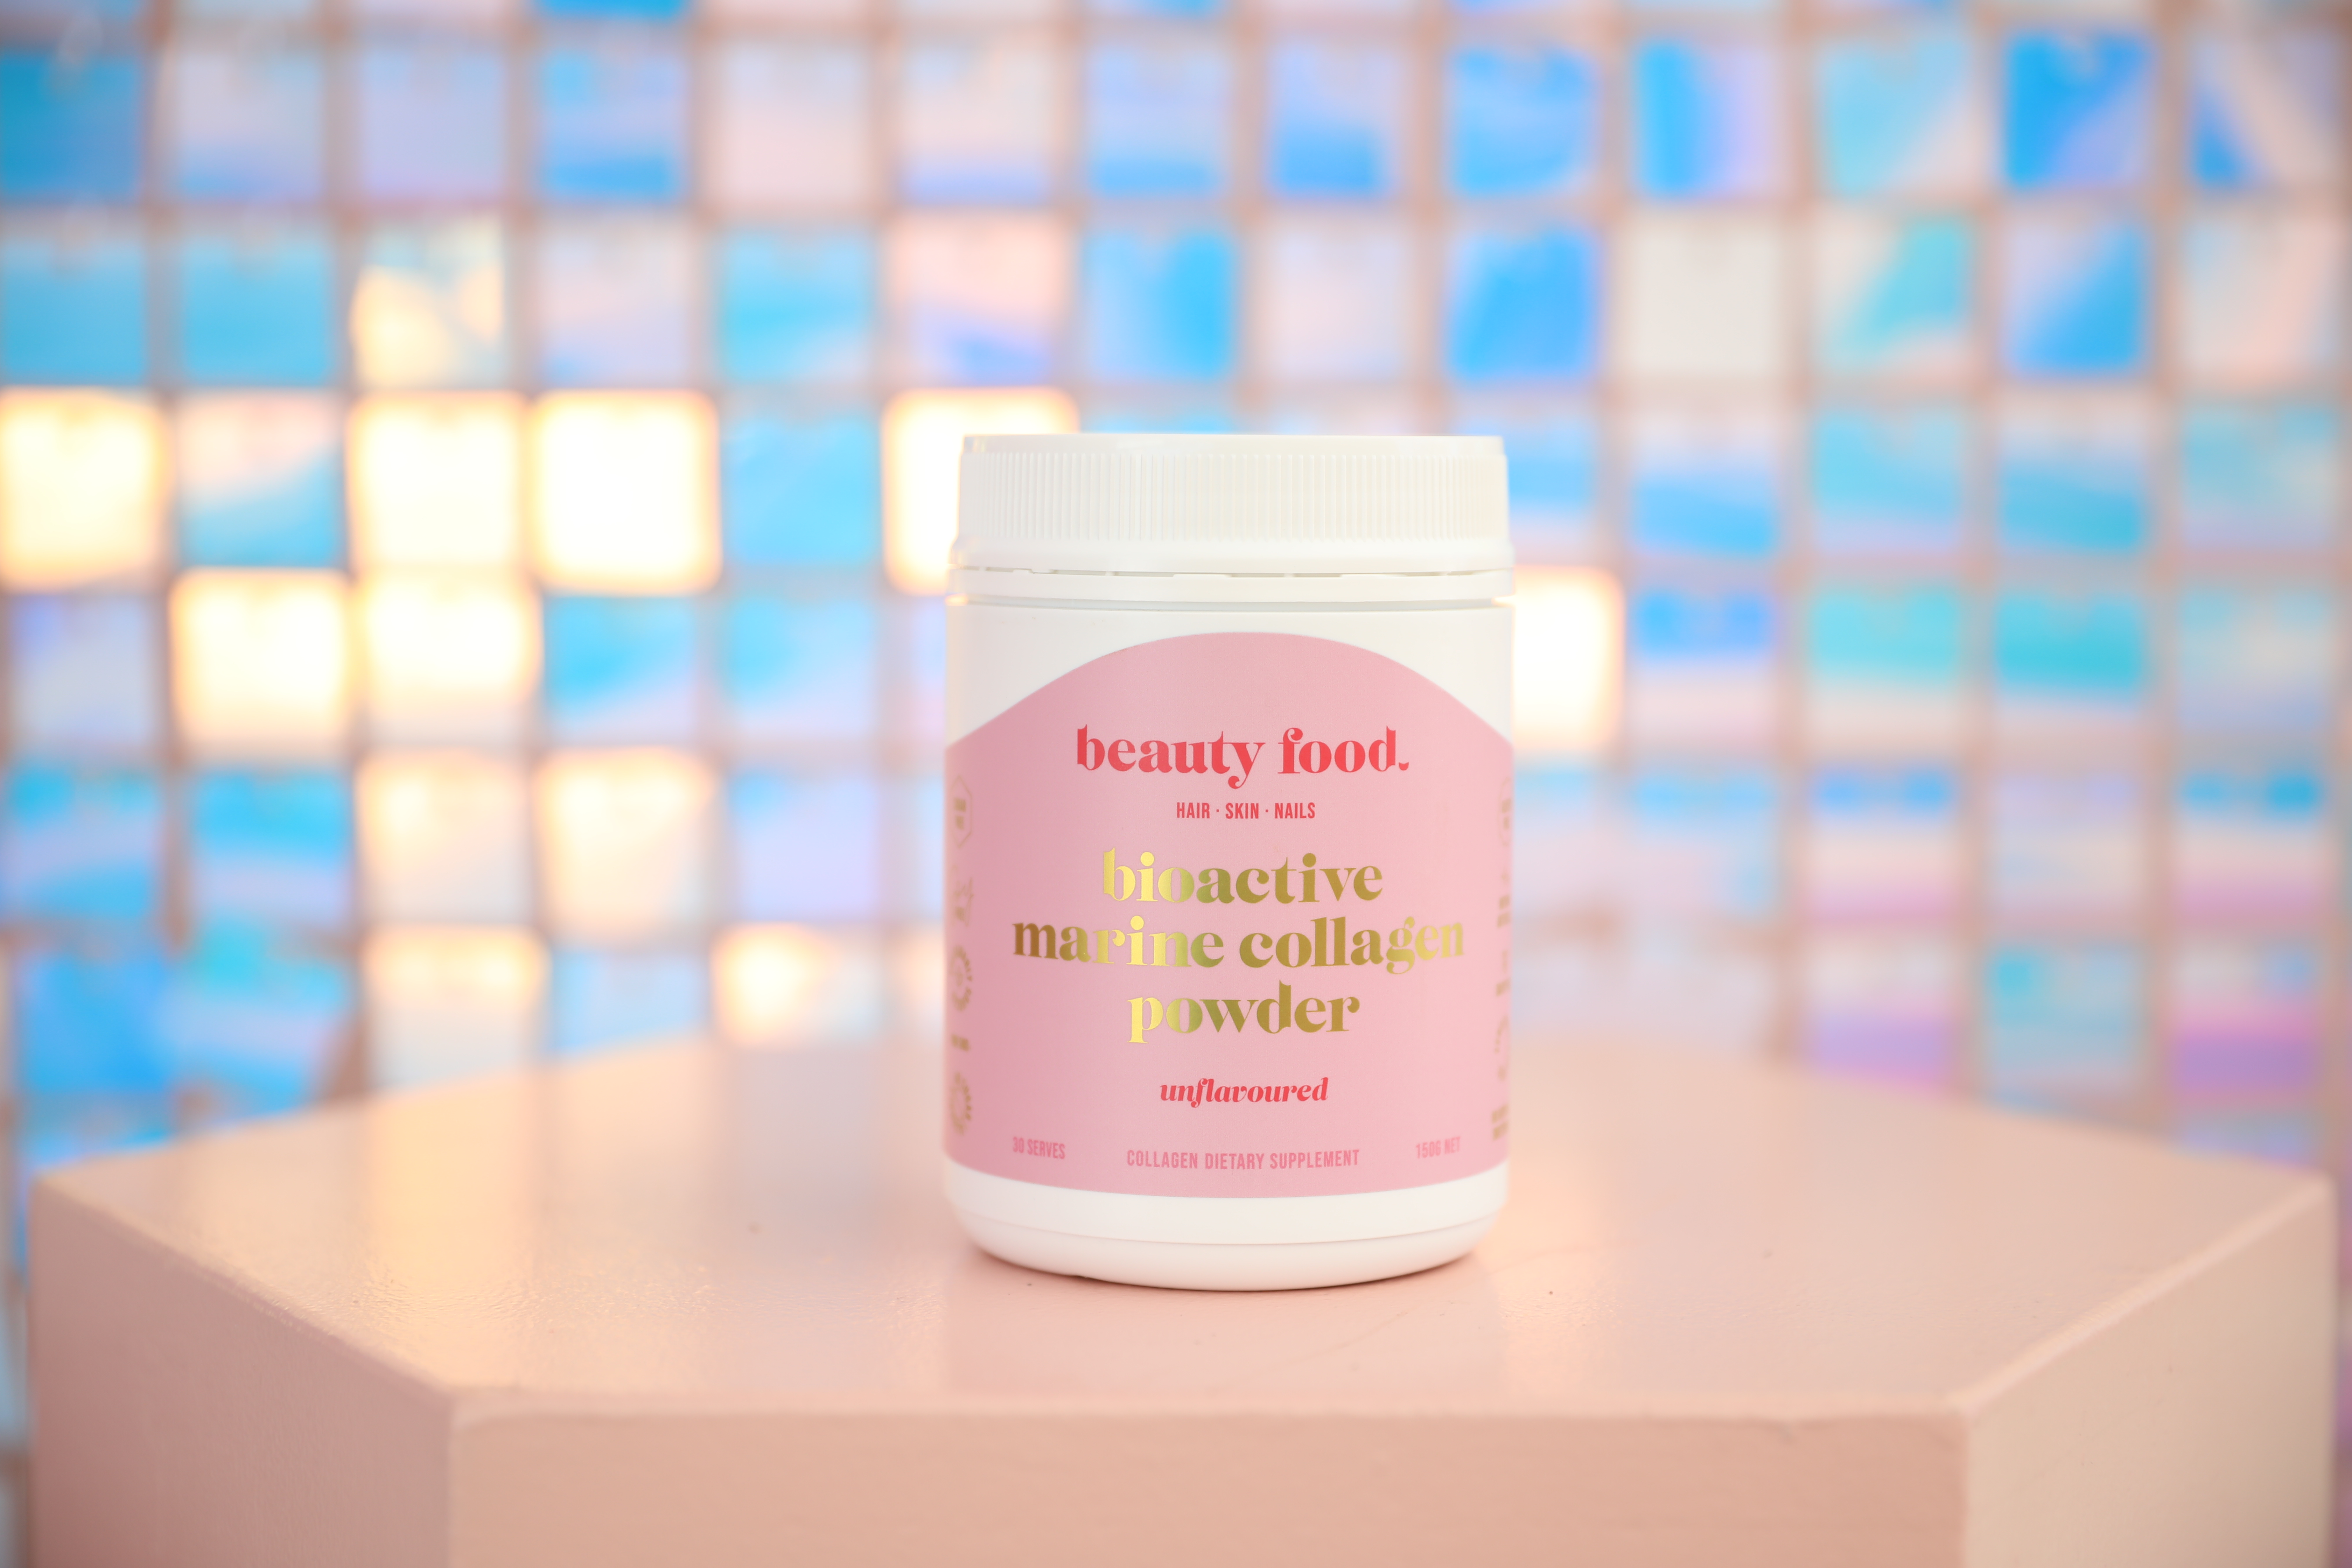 Beauty Food's range has expanded Image